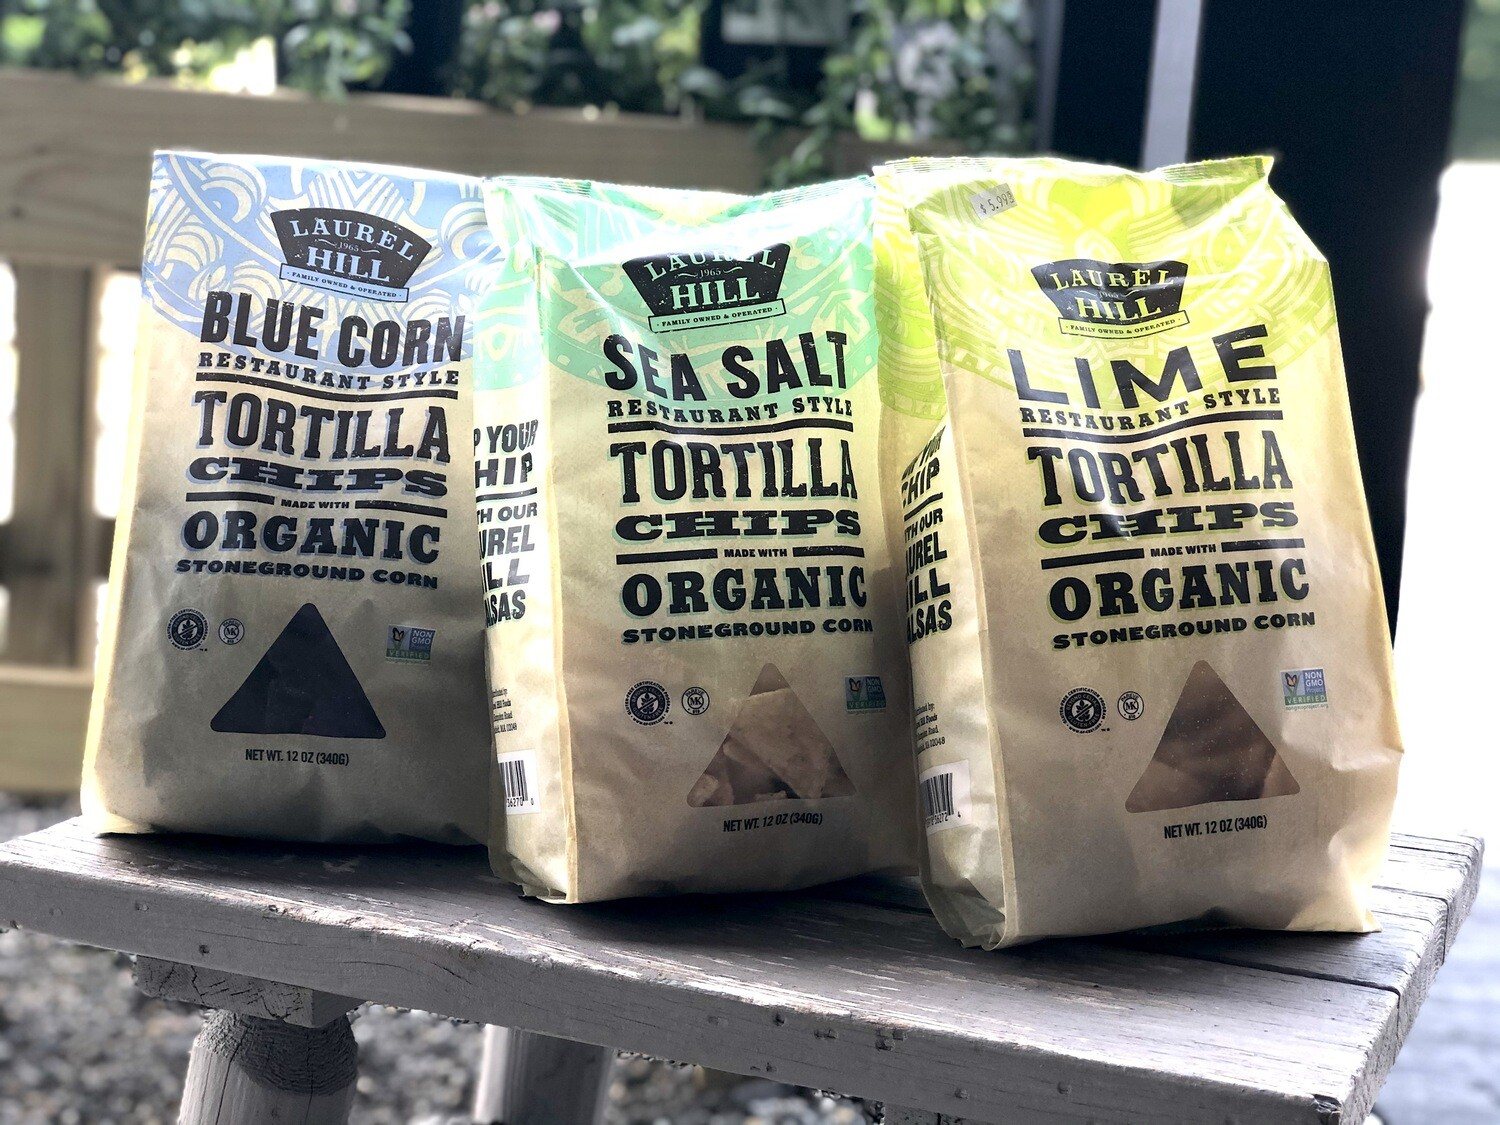 Laurel Hill Tortilla Chips (O, GMO Free)